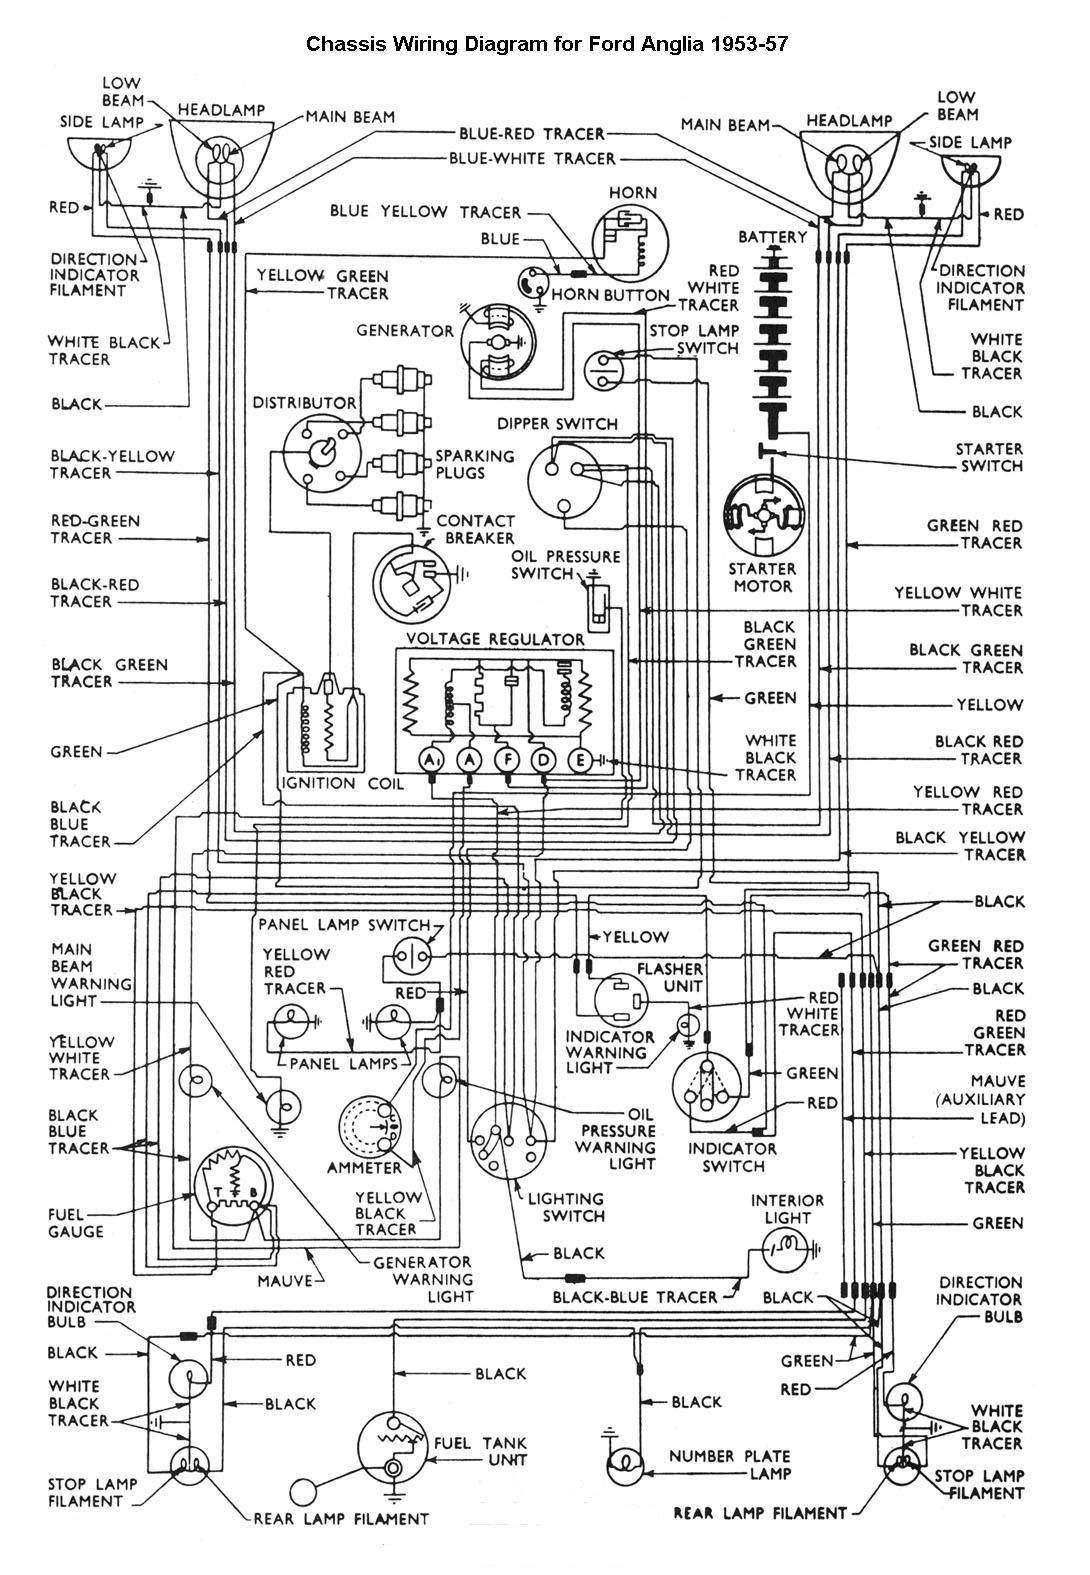 Home Automotive Wiring A Practical Guide To Wire 10064235mmaluminumboxcircuitboardenclosurecaseproject Car Diagram Cool Ideas Pinte Rh Pinterest Com